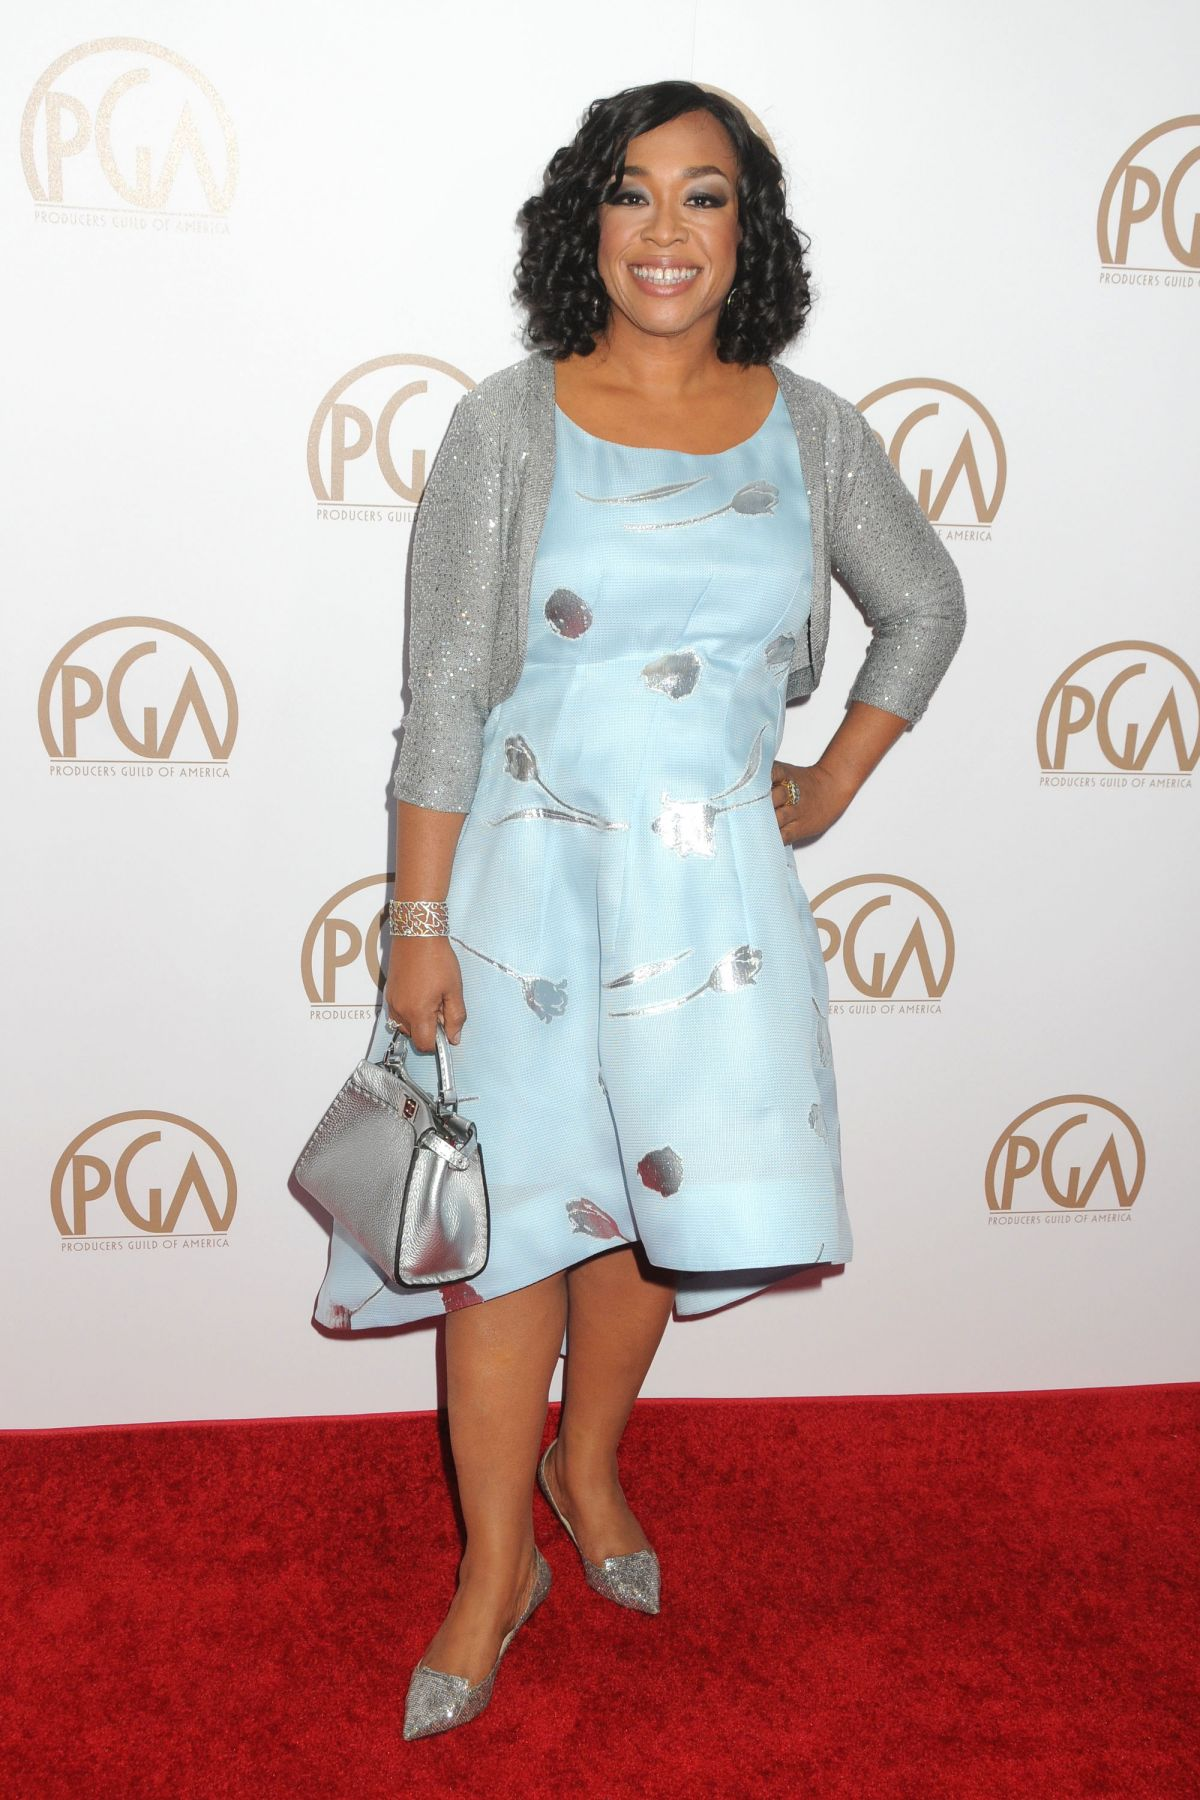 SHONDA RHIMES at 27th Annual Producers Guild Awards in Los Angeles 01/23/2016